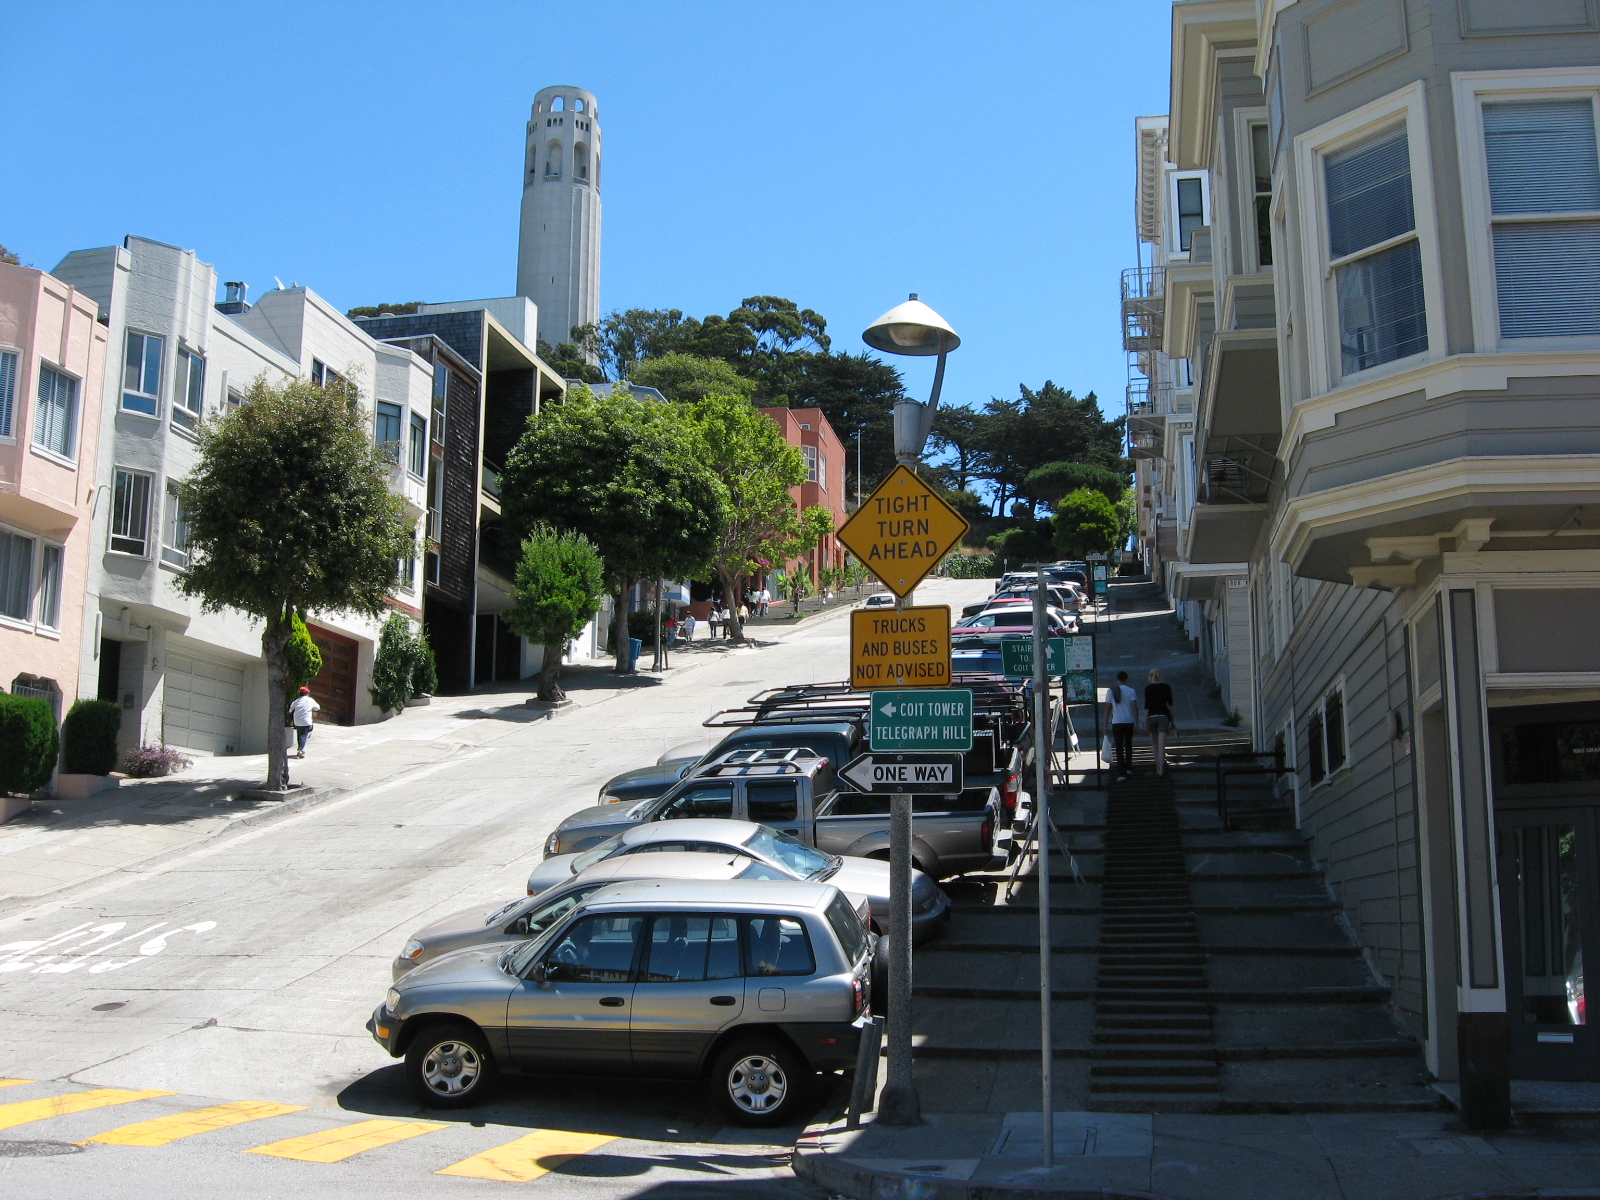 Filbert Street Looking Up to Coit Tower